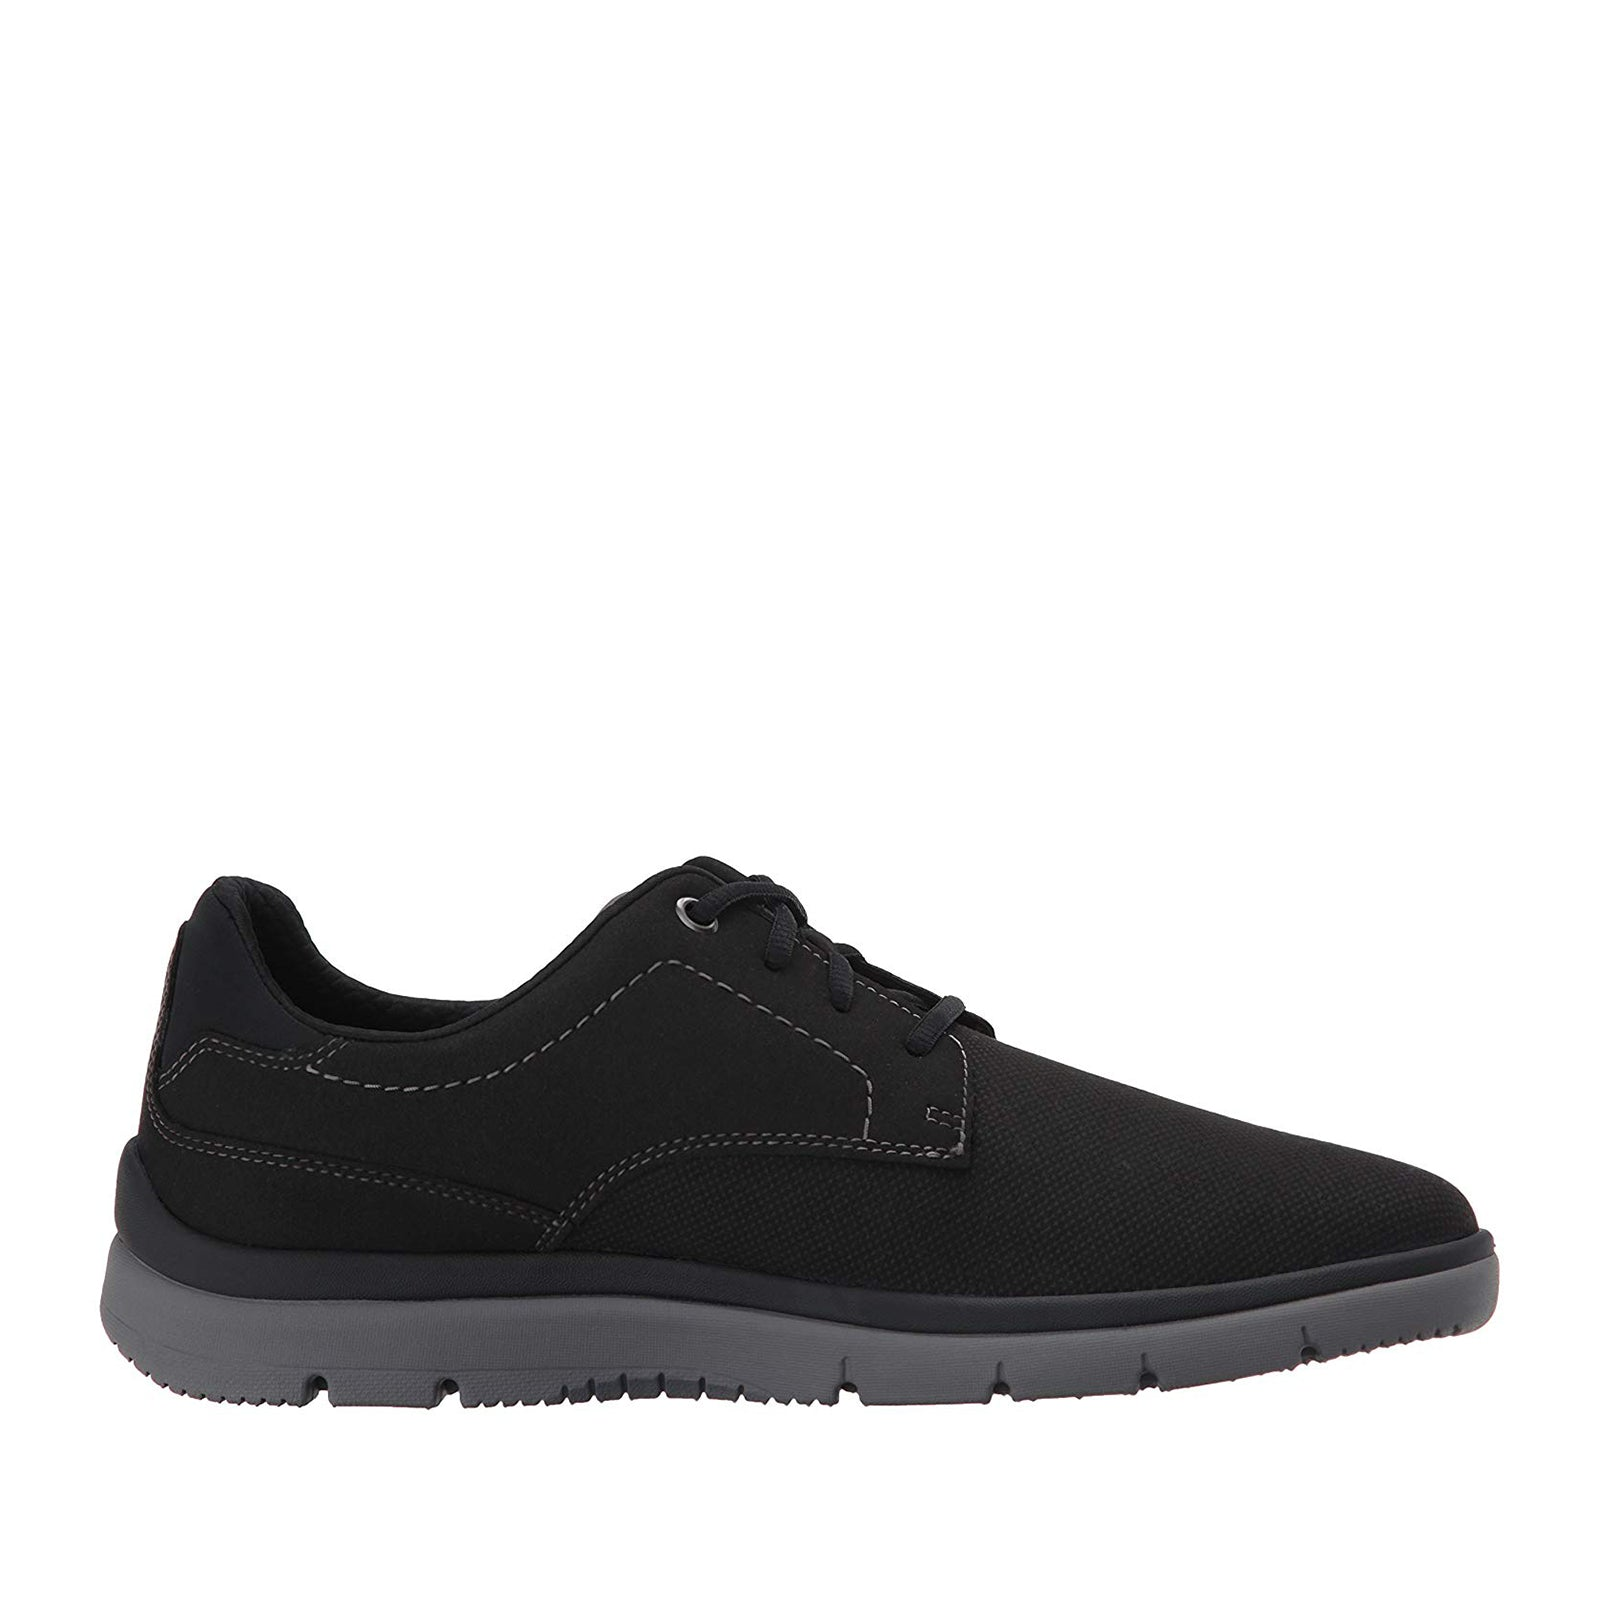 Clarks Tunsil Plain Oxford-Black